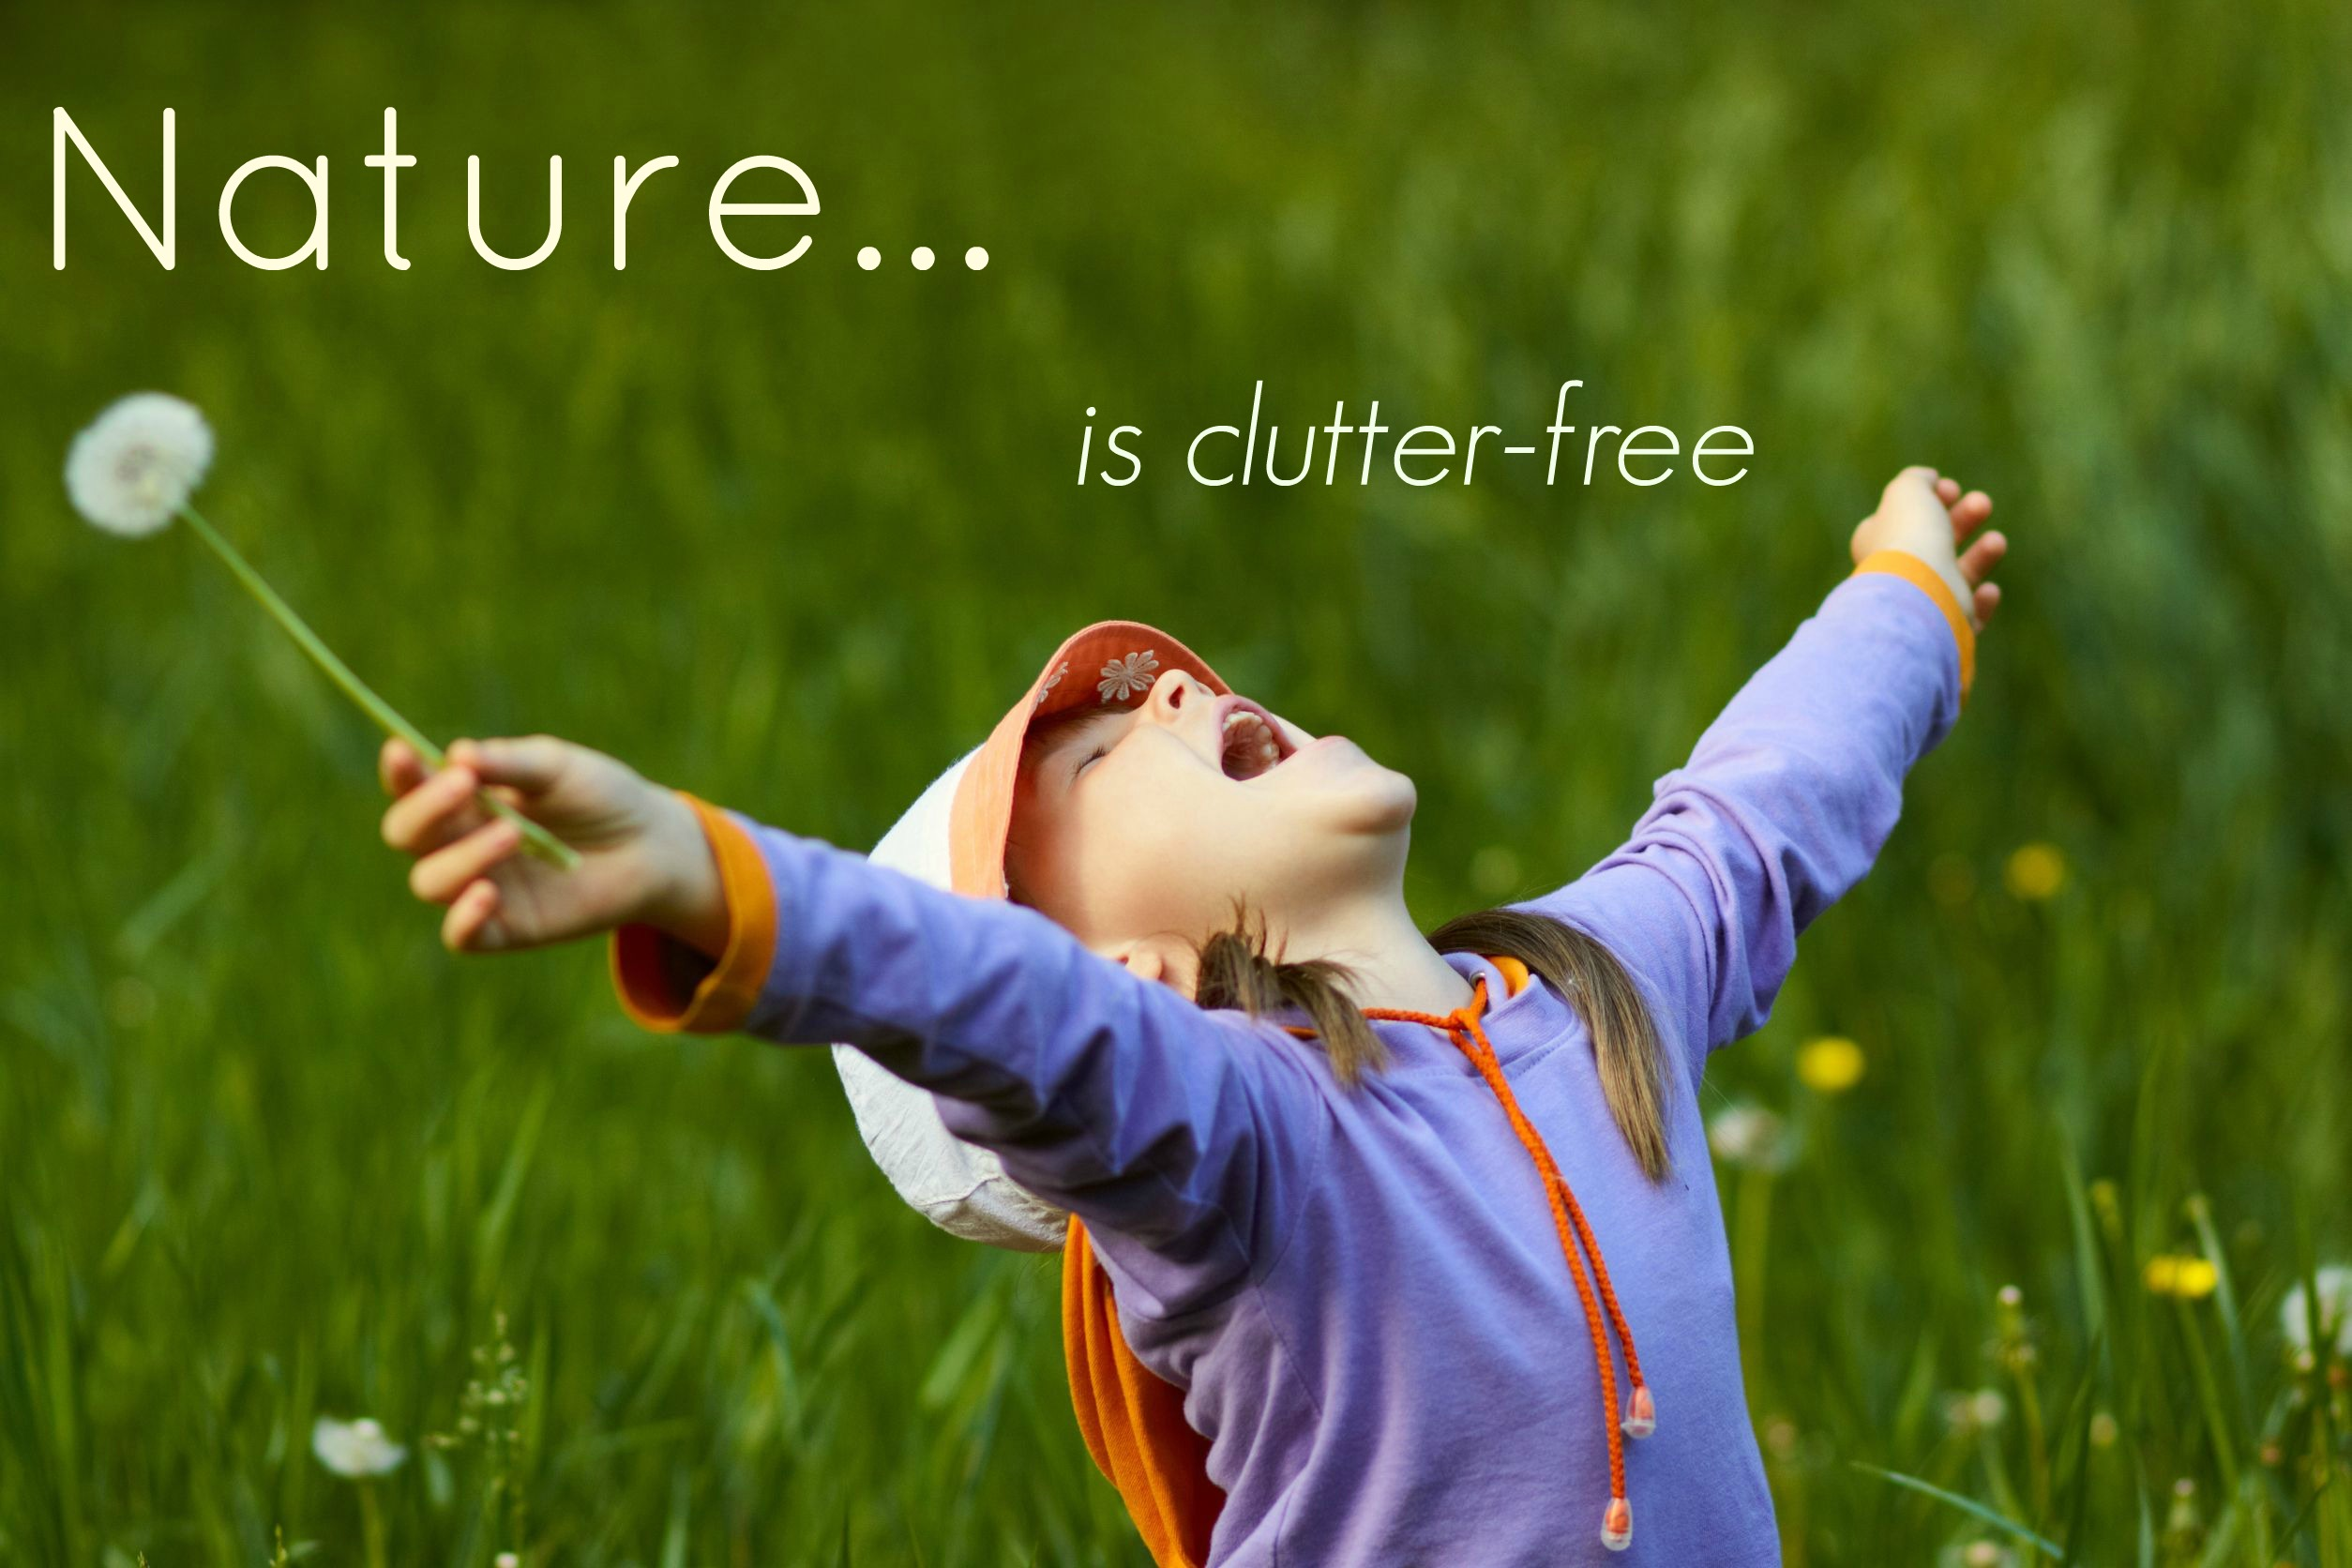 Nature is Clutter-Free